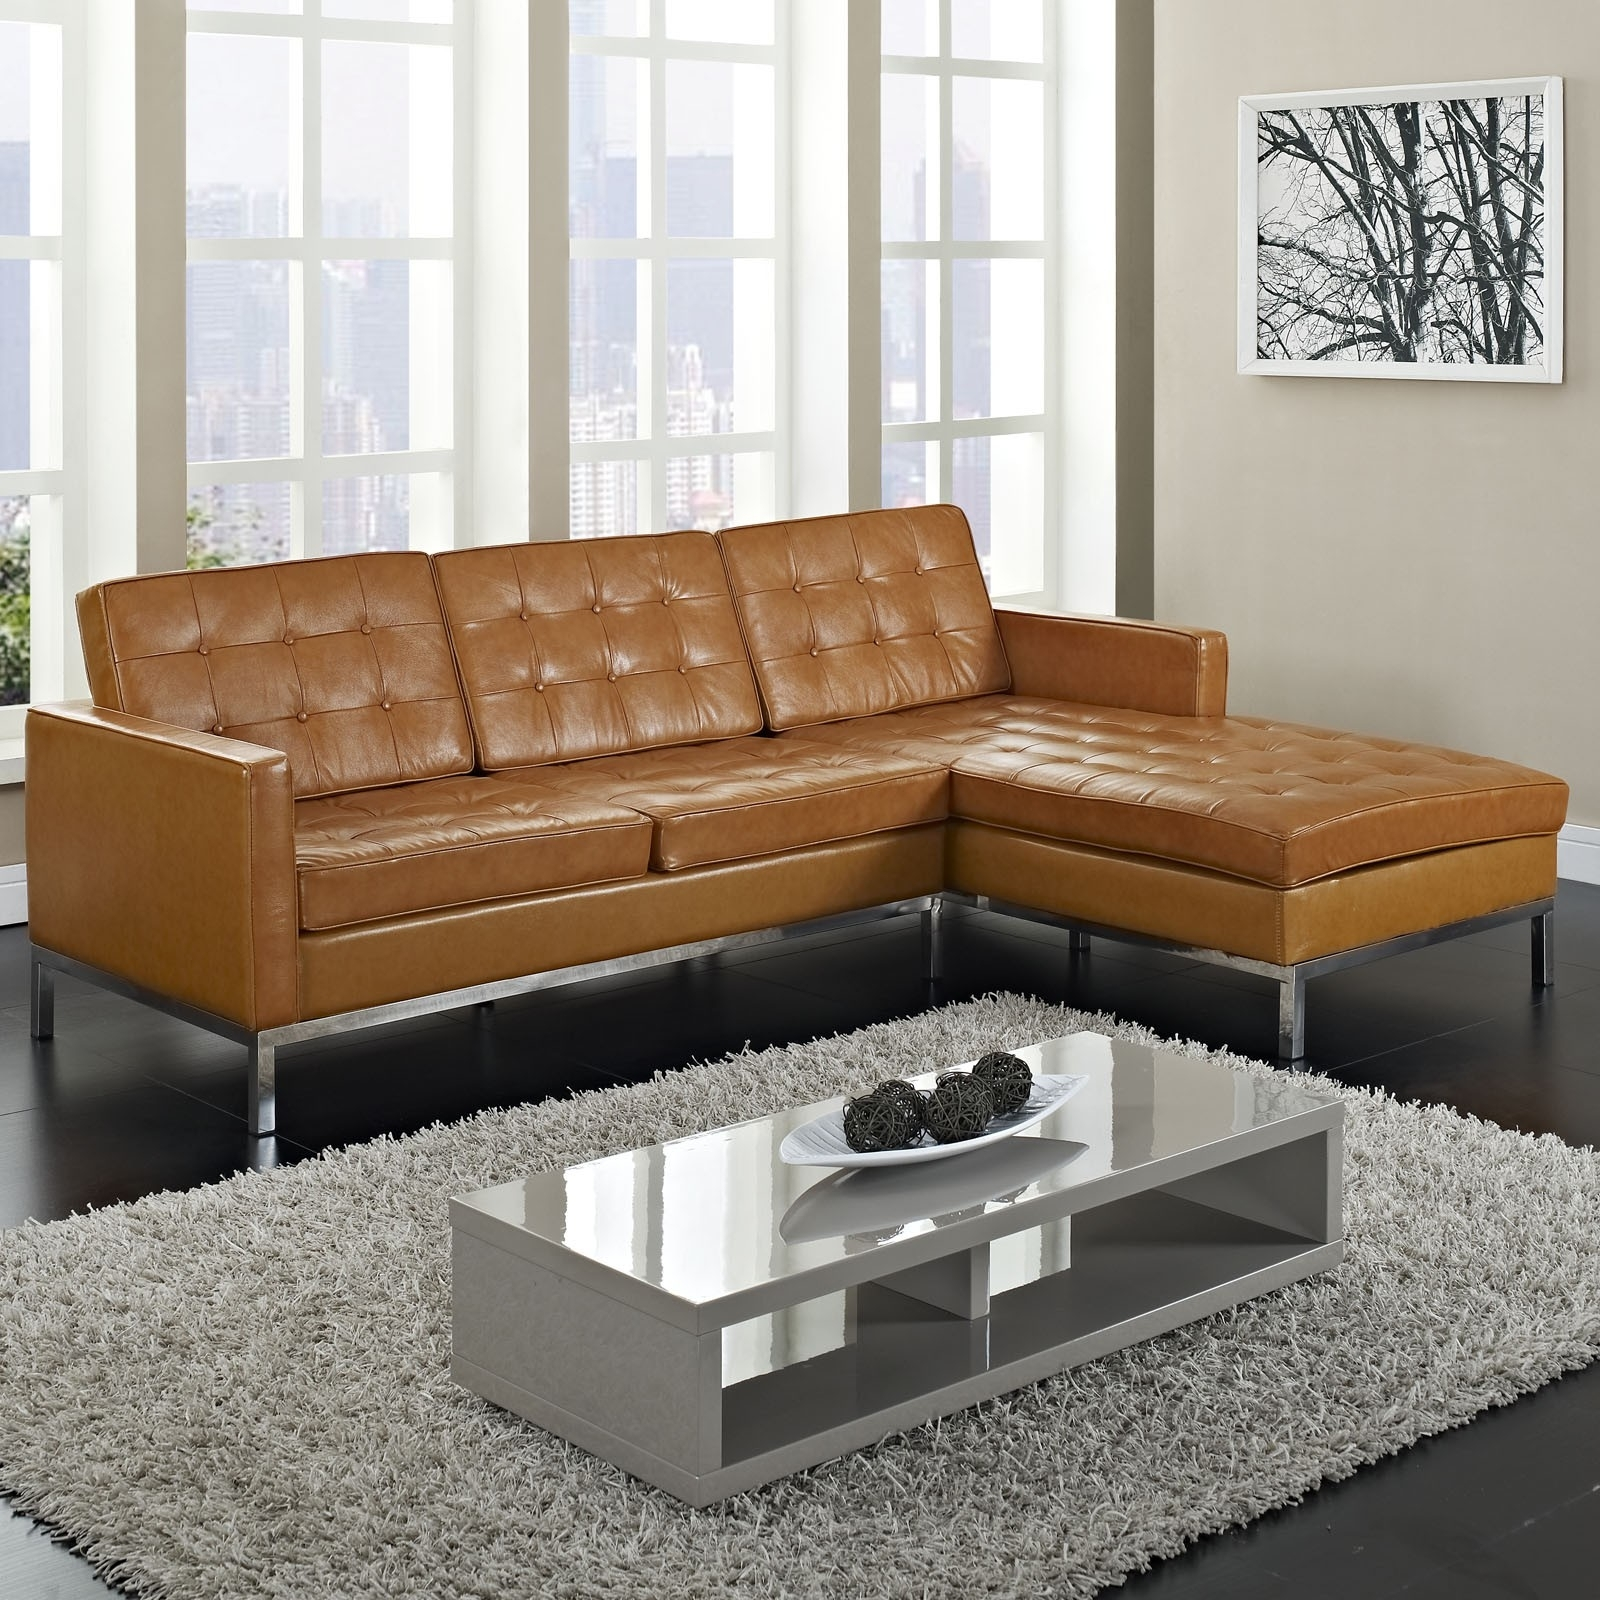 Furniture, Maximizing Small Living Room Spaces With 3 Piece Brown For Leather Sofas With Storage (Image 3 of 10)